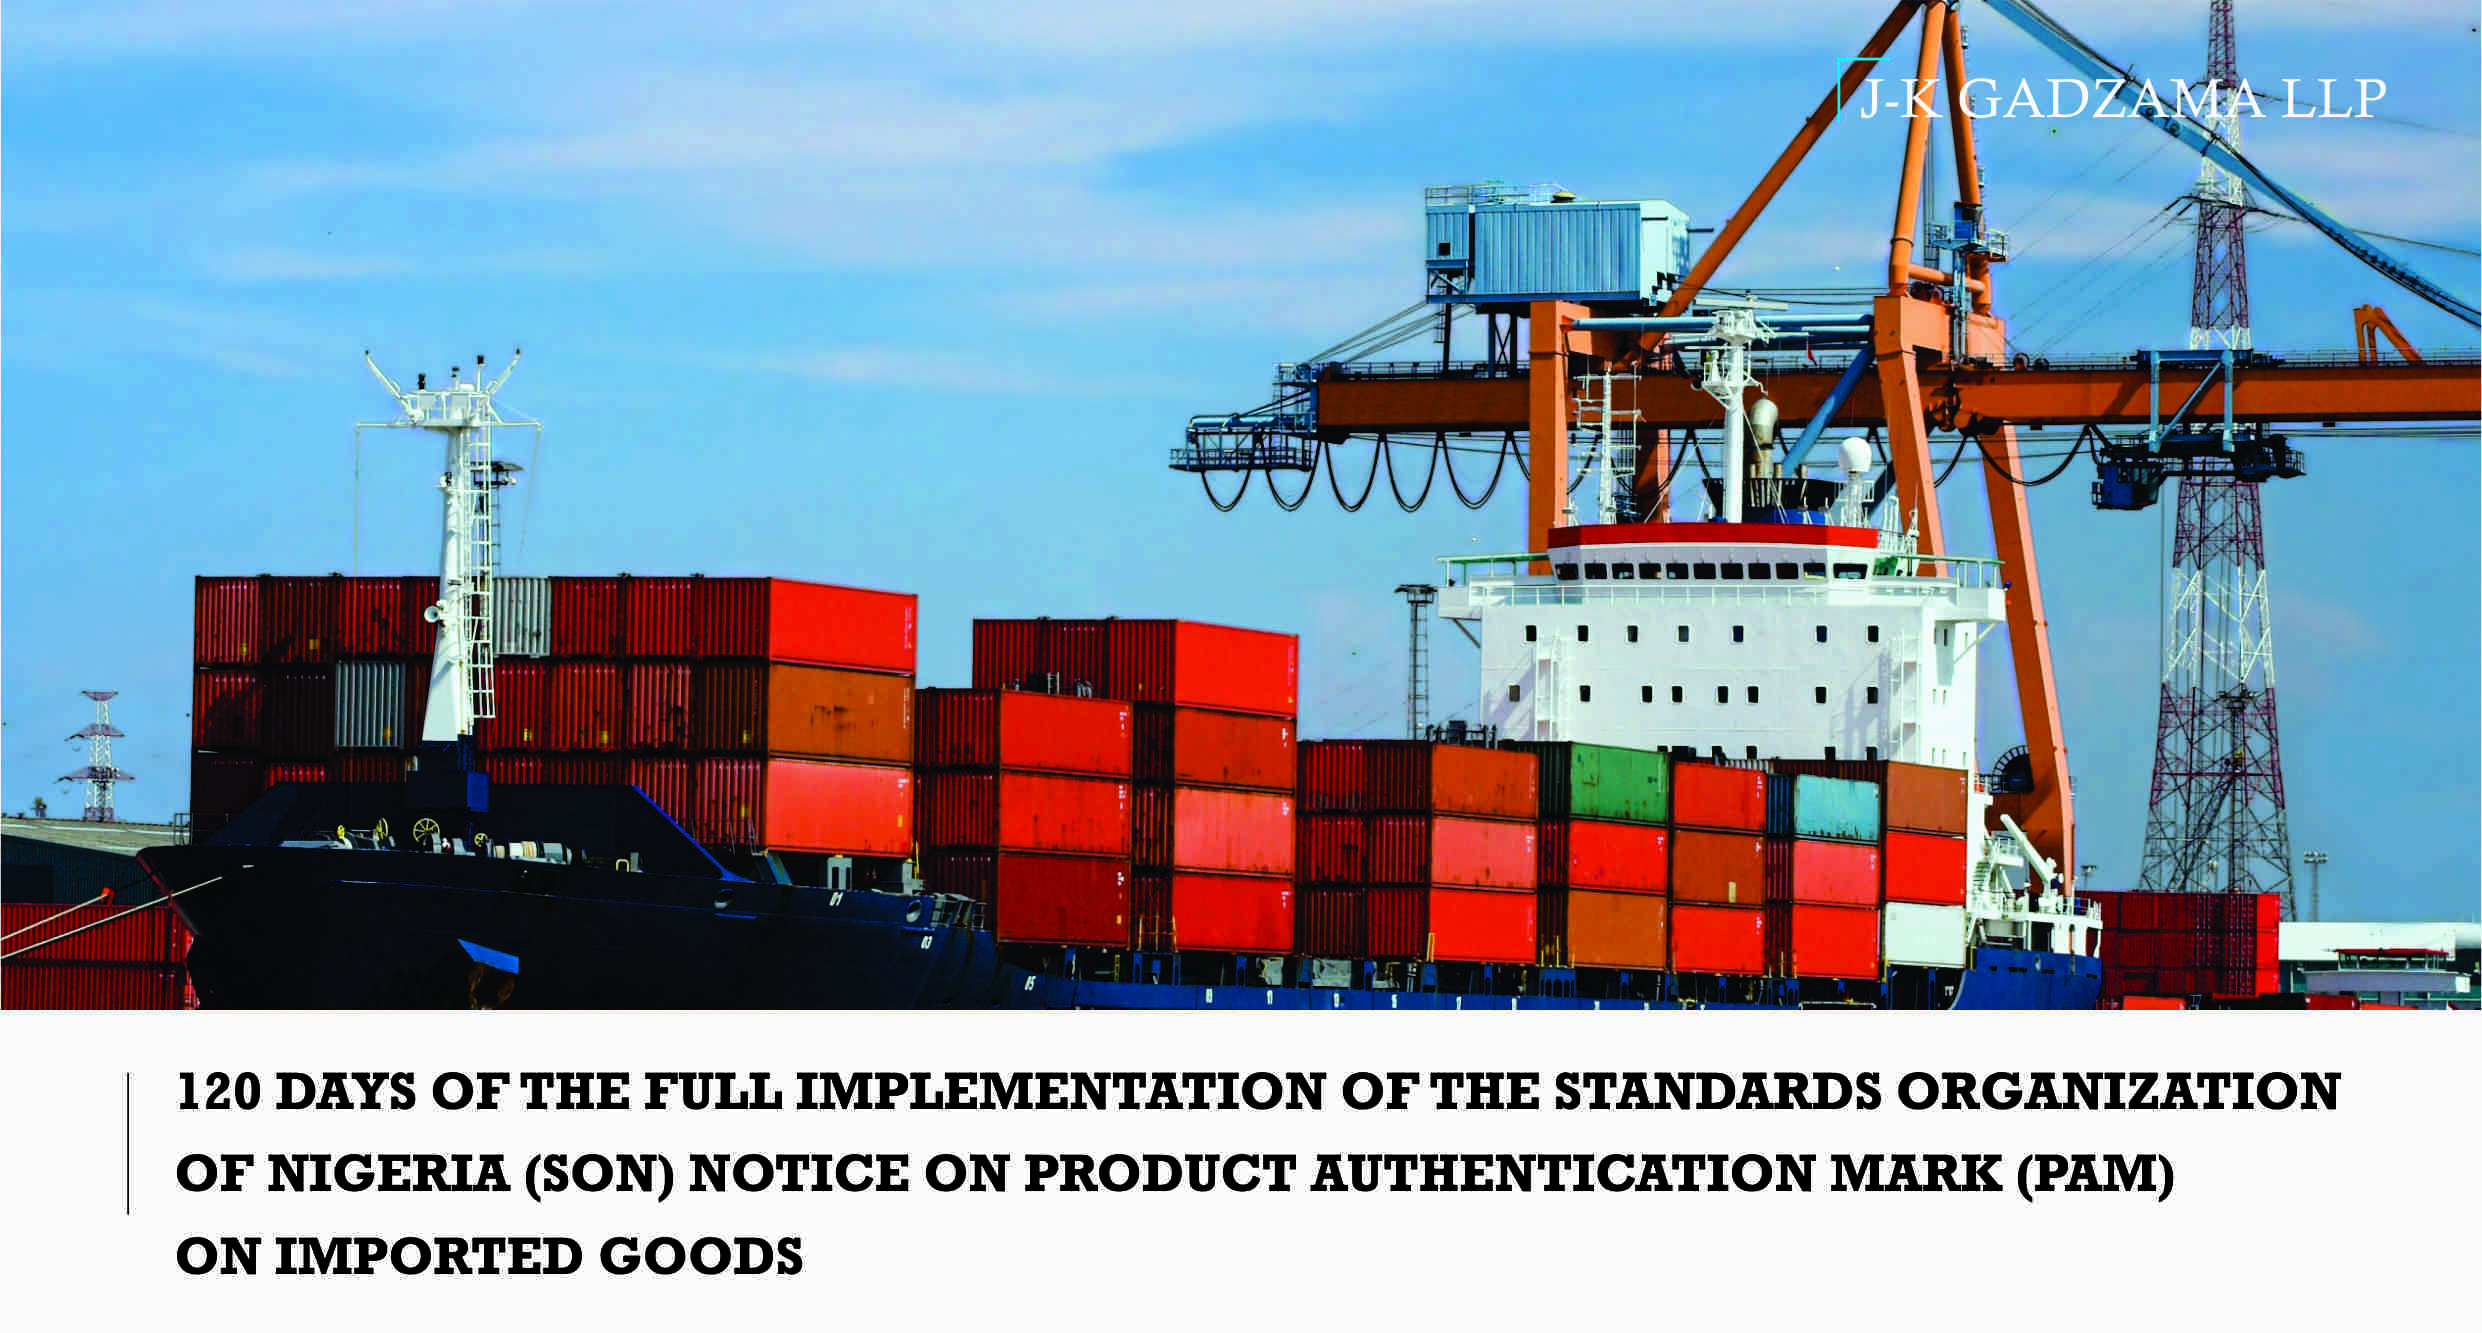 120 Days of the Full Implementation of the Standards of Organization of Nigeria (SON) Notice on Product Authentication Mark (PAM) on Imported Goods